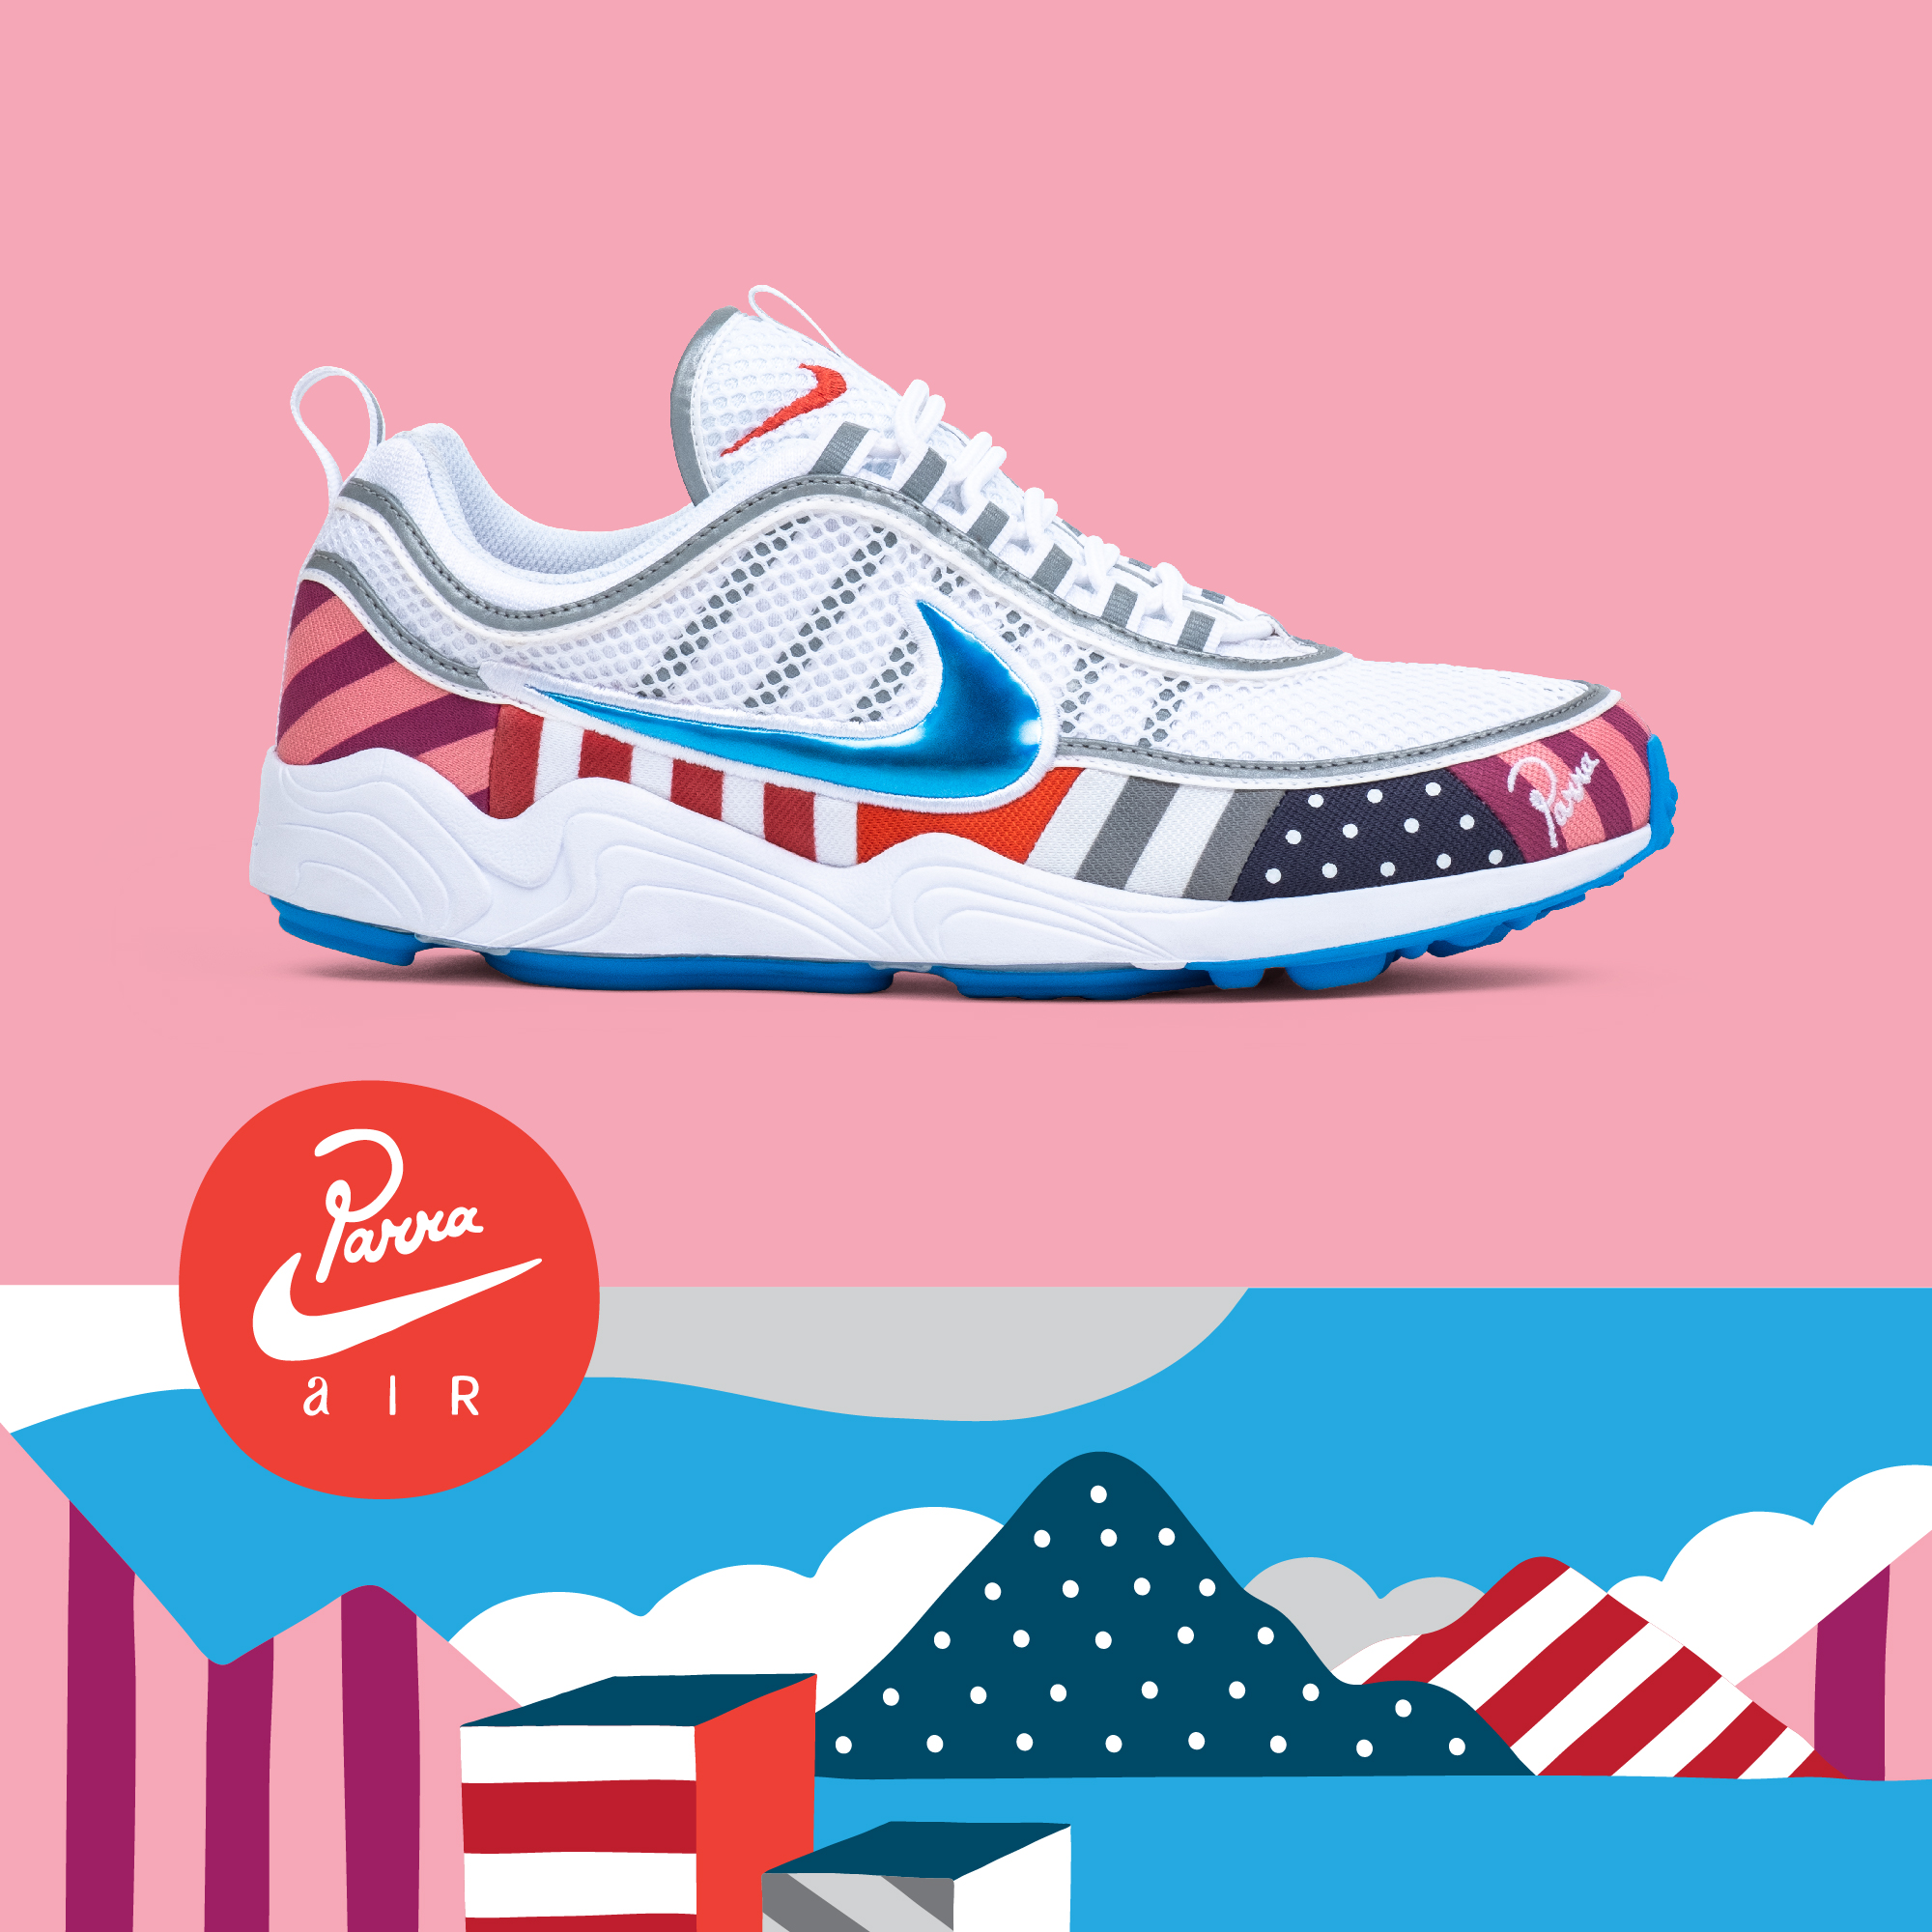 new styles 1a66c 42374 DONE  Parra x Nike Spiridon Quiz by OVERKILL - OVERKILL Blog